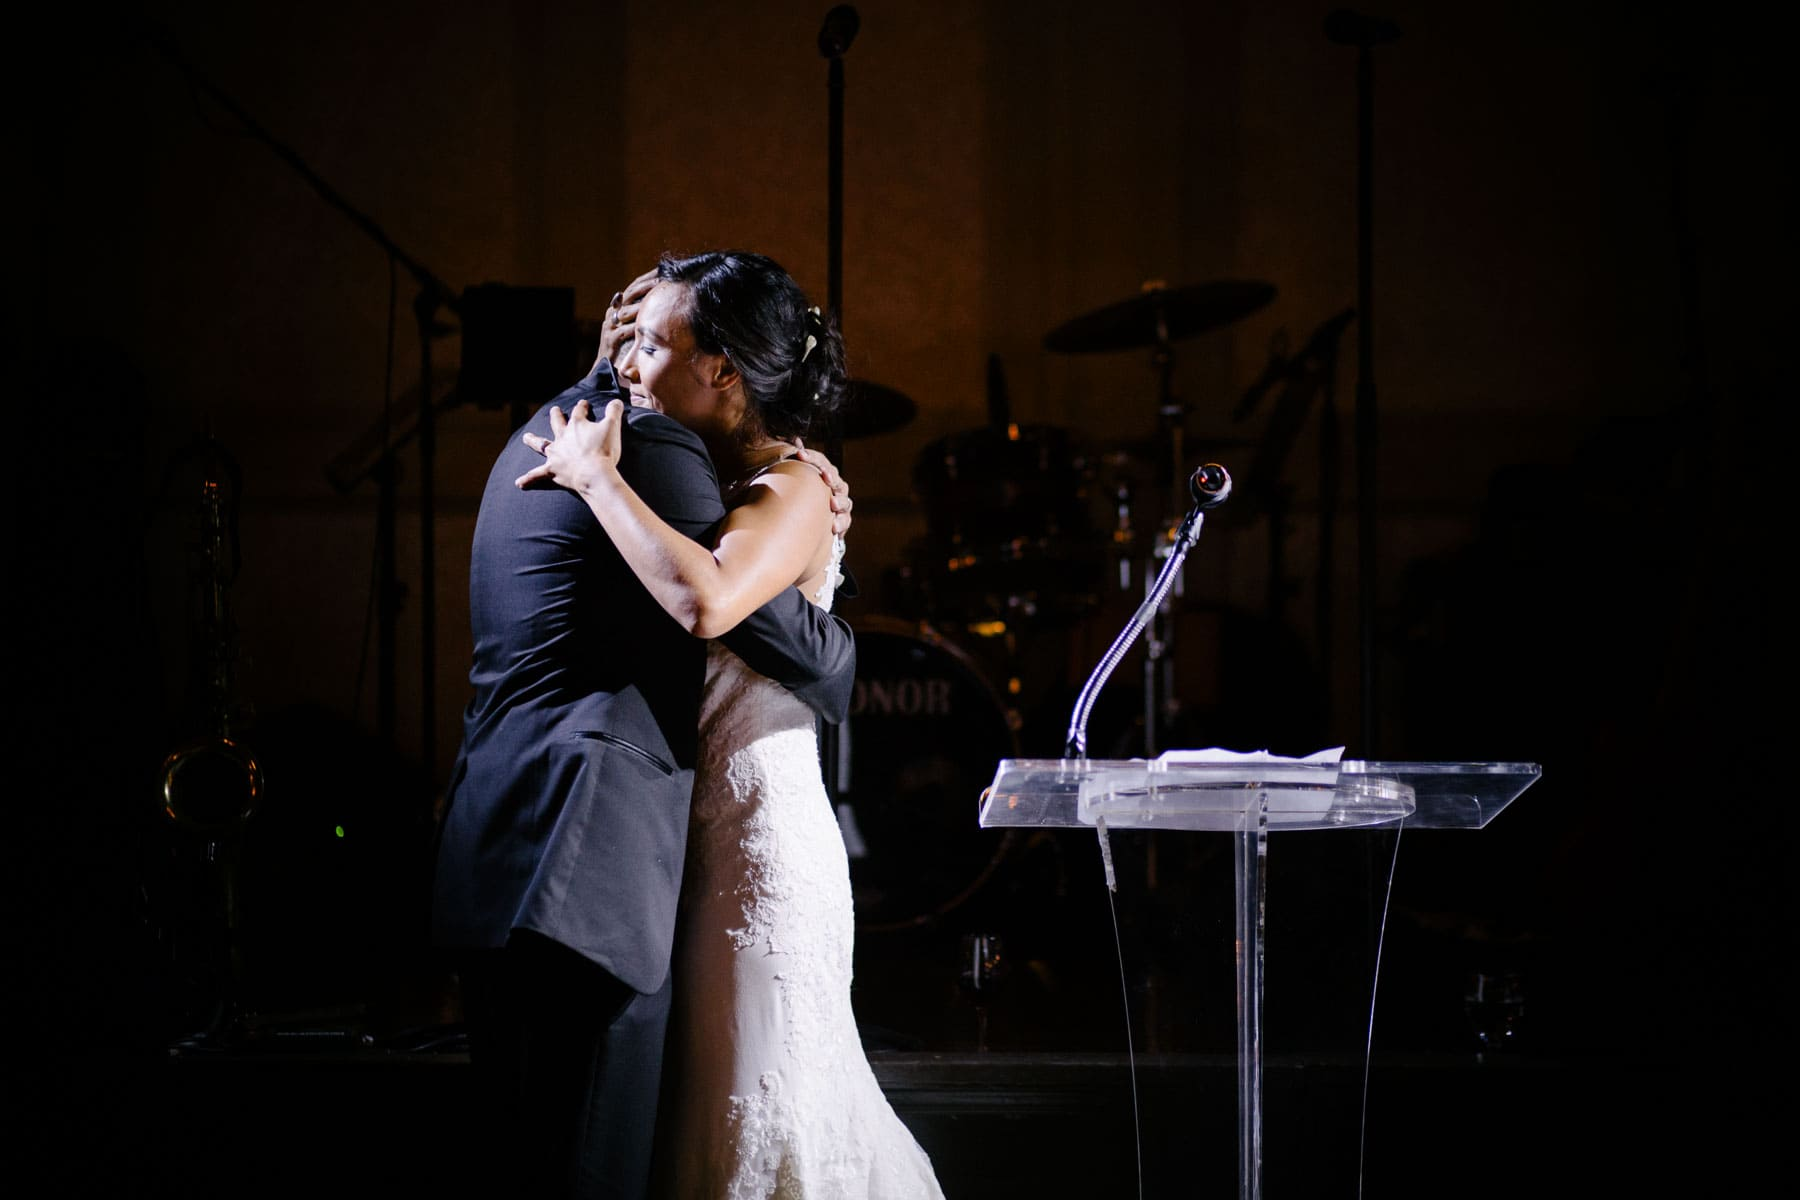 The bride and groom hug beside a speaker's pedestal in a dark room in this Boulevard Club wedding in Toronto..